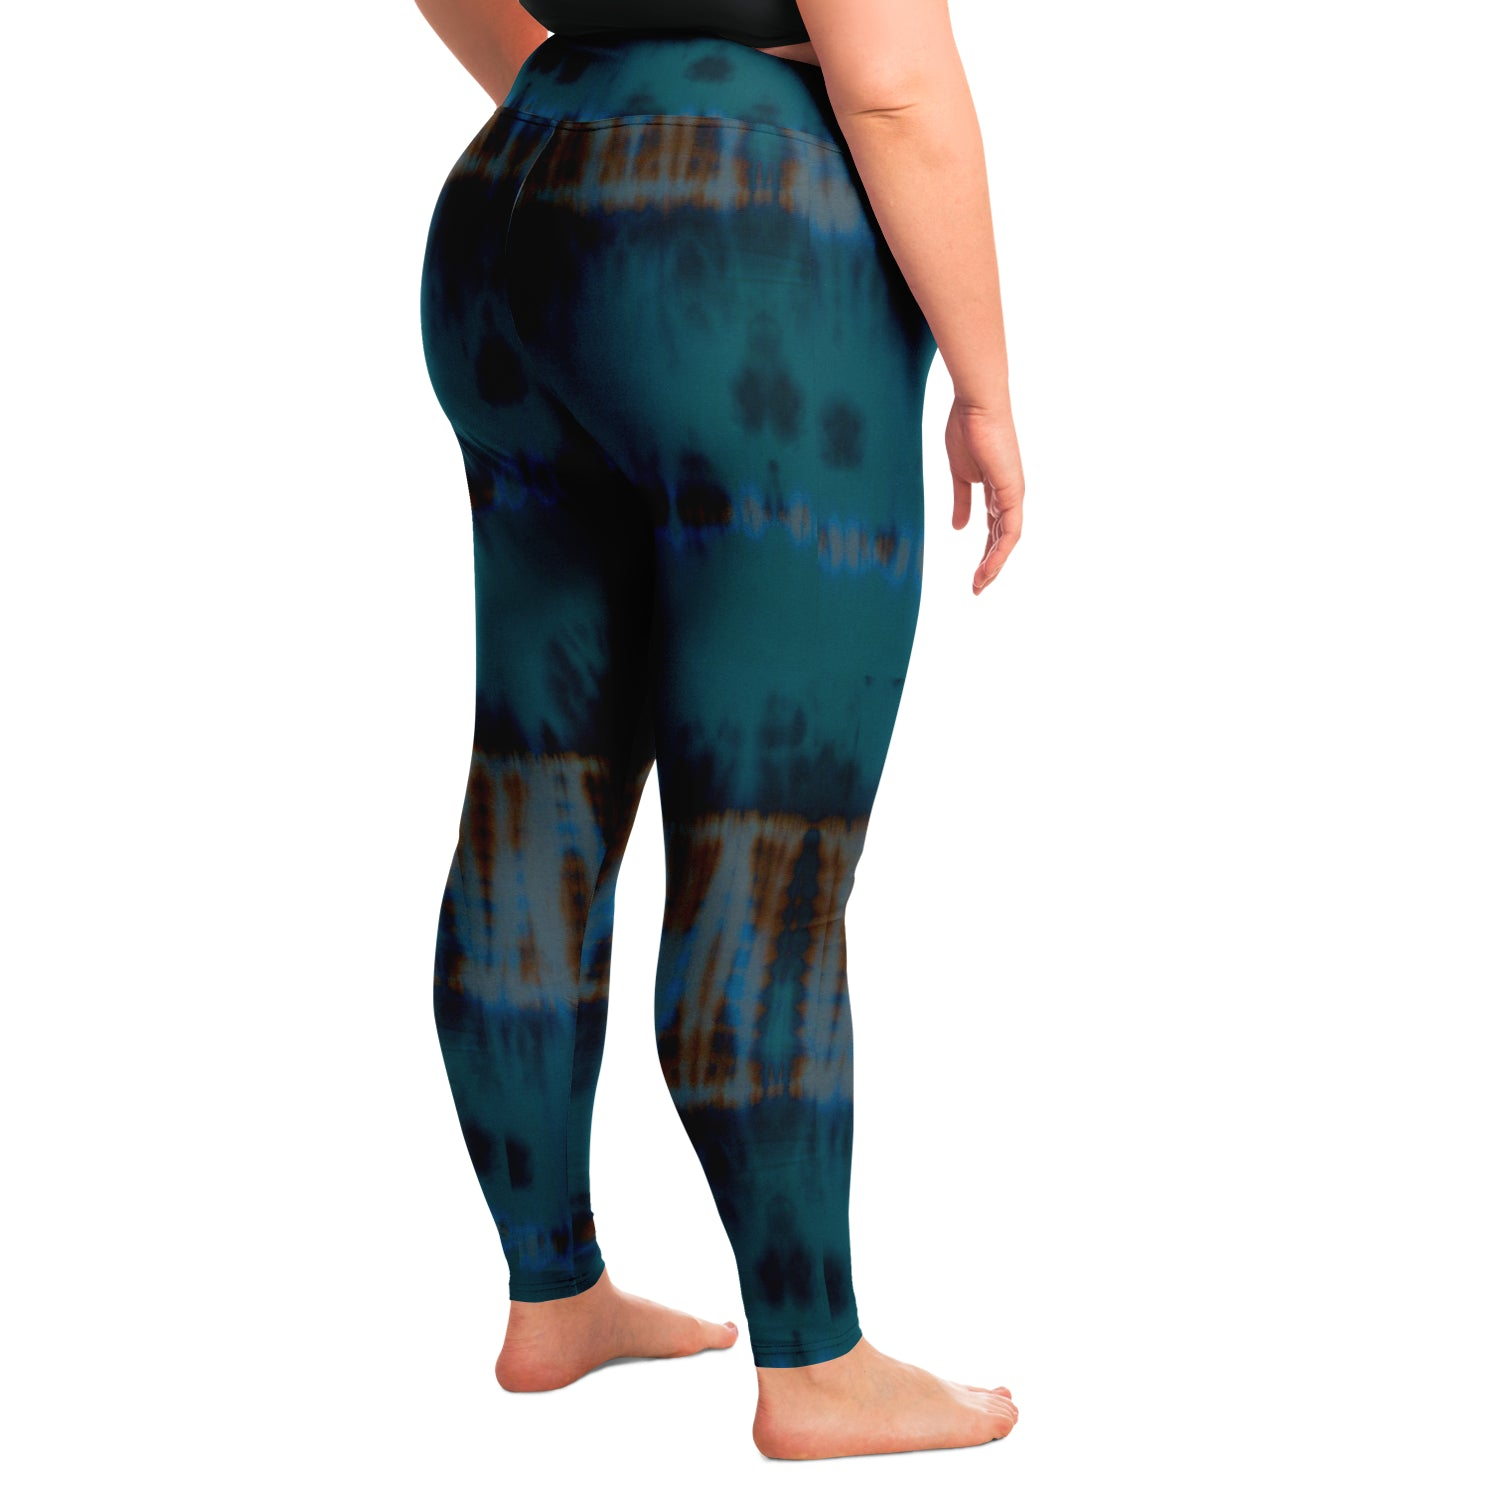 Teal Tie Dye Yoga Leggings Plus Size